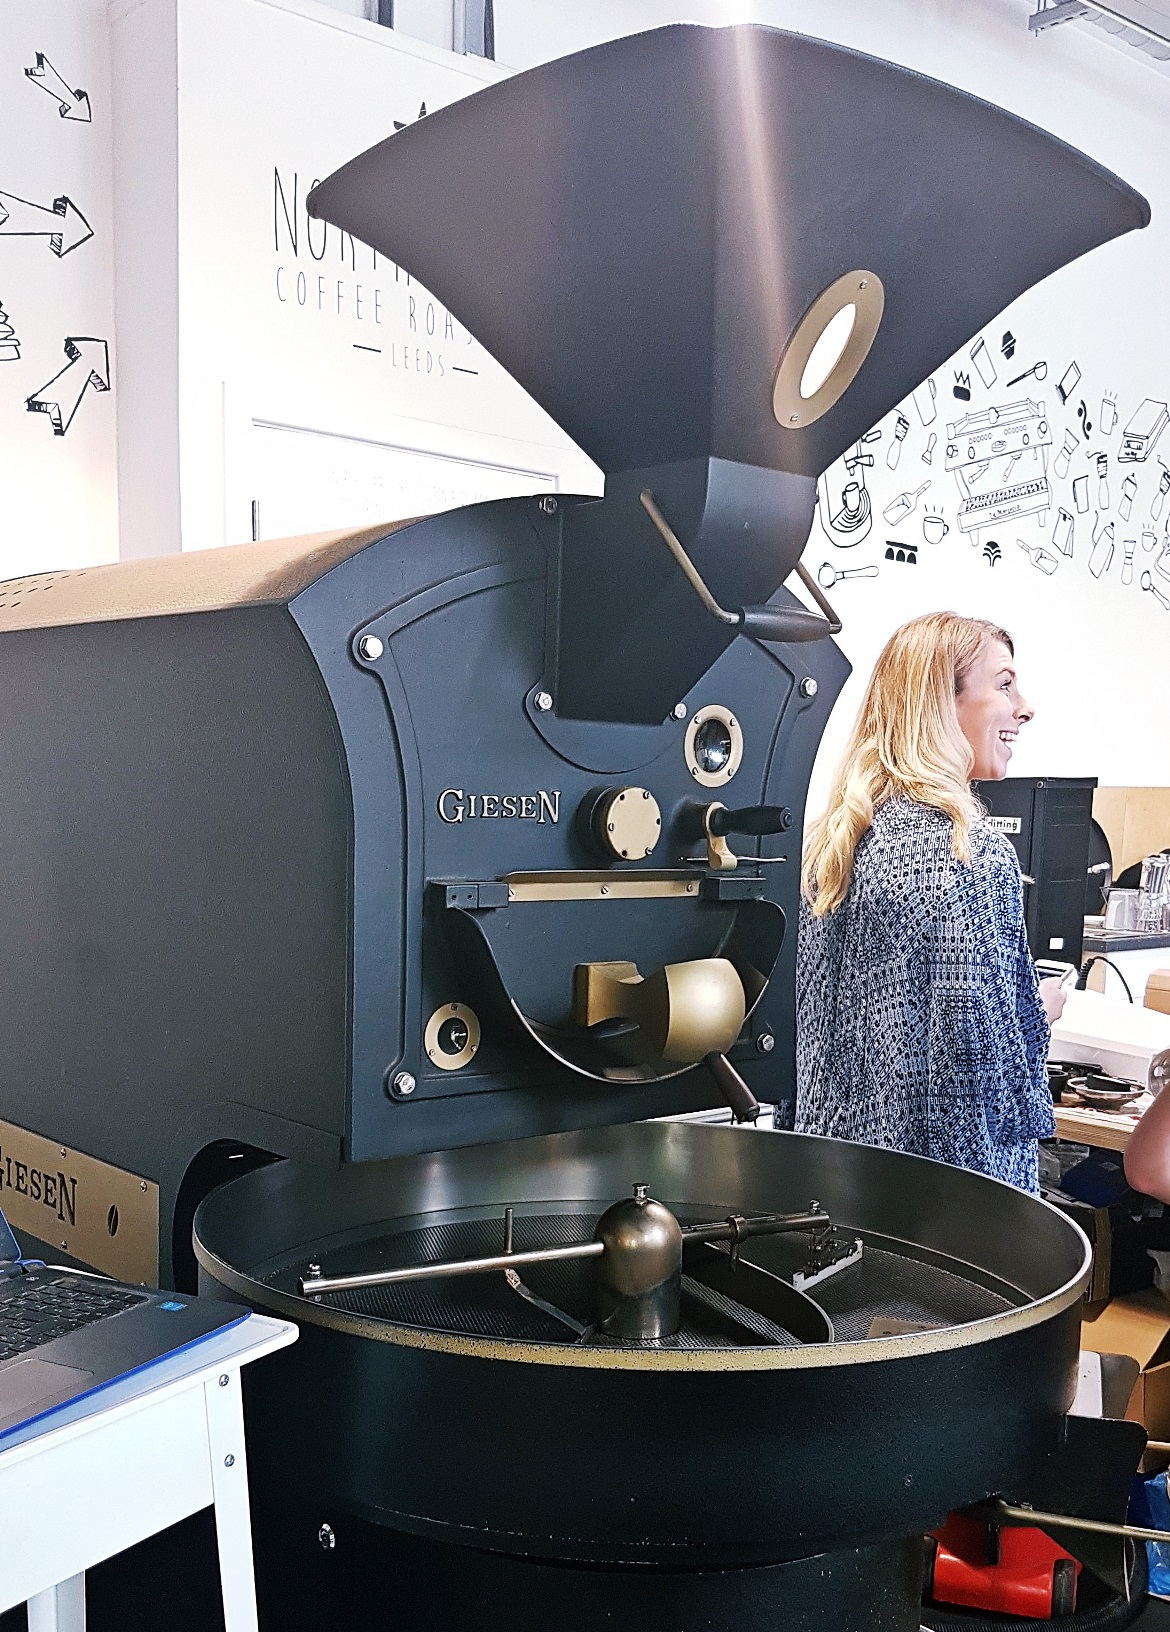 Coffee roasting equipment - Review of North Star Coffee Shop by BeckyBecky Blogs